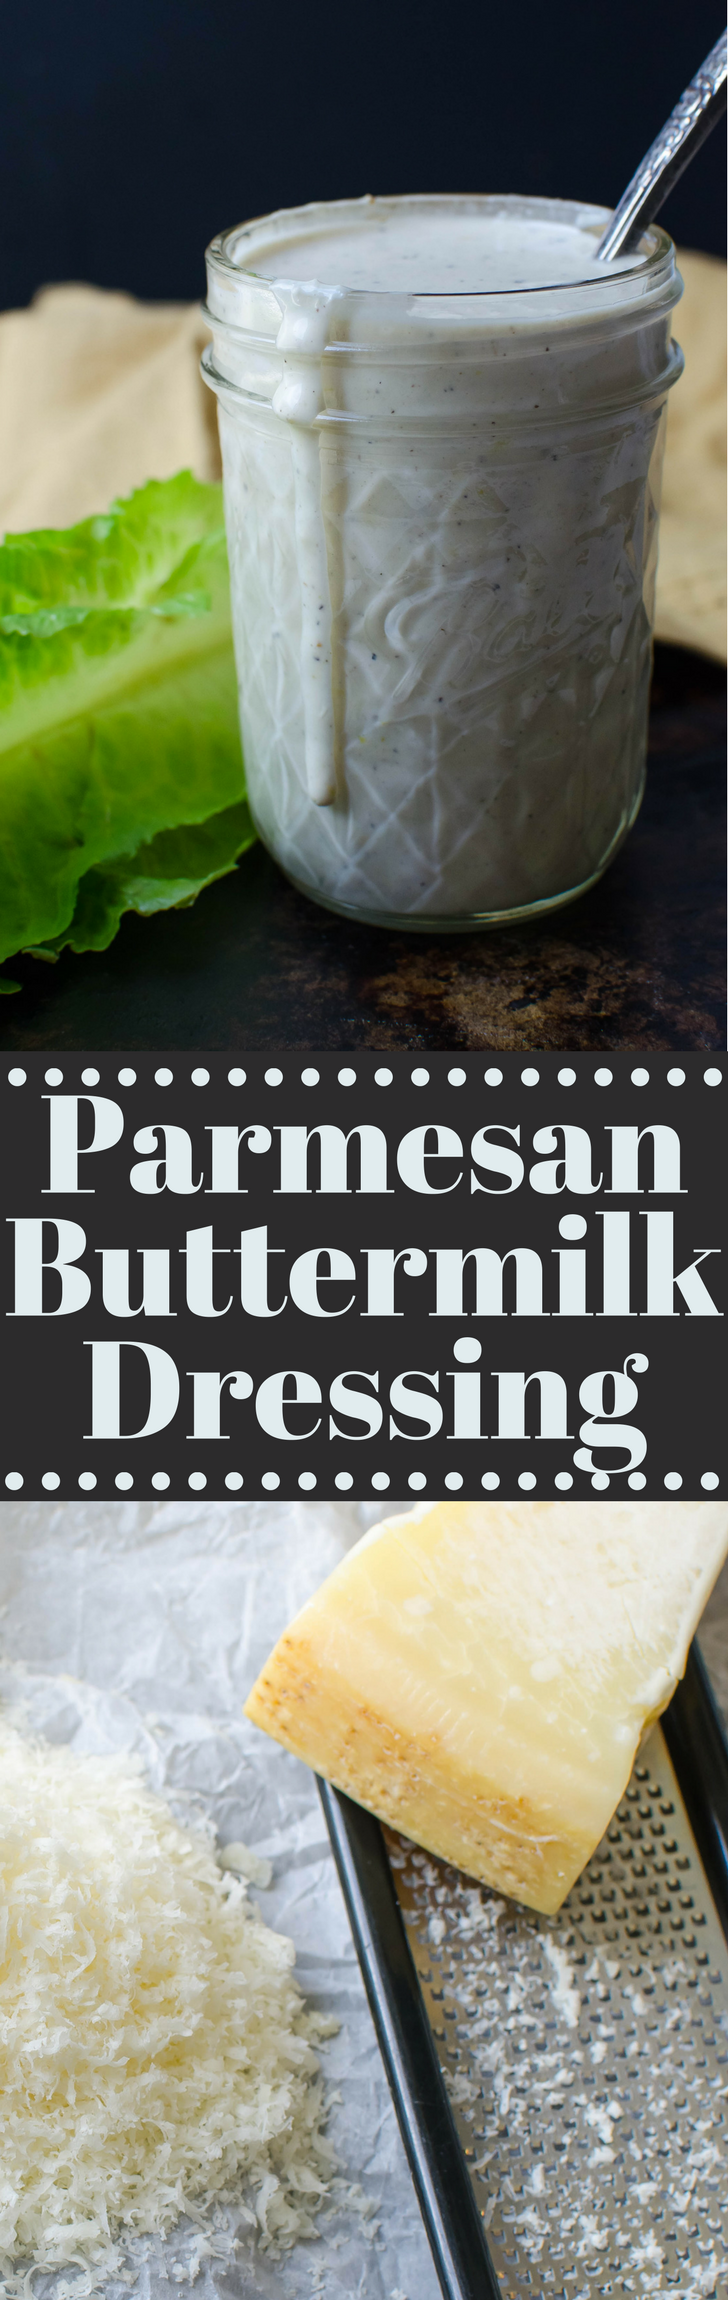 It's easier than you think to make homemade salad dressing.This dressing has garlic, black pepper & a touch of lemon for a perfect balance. #ad #theonlyparmesan